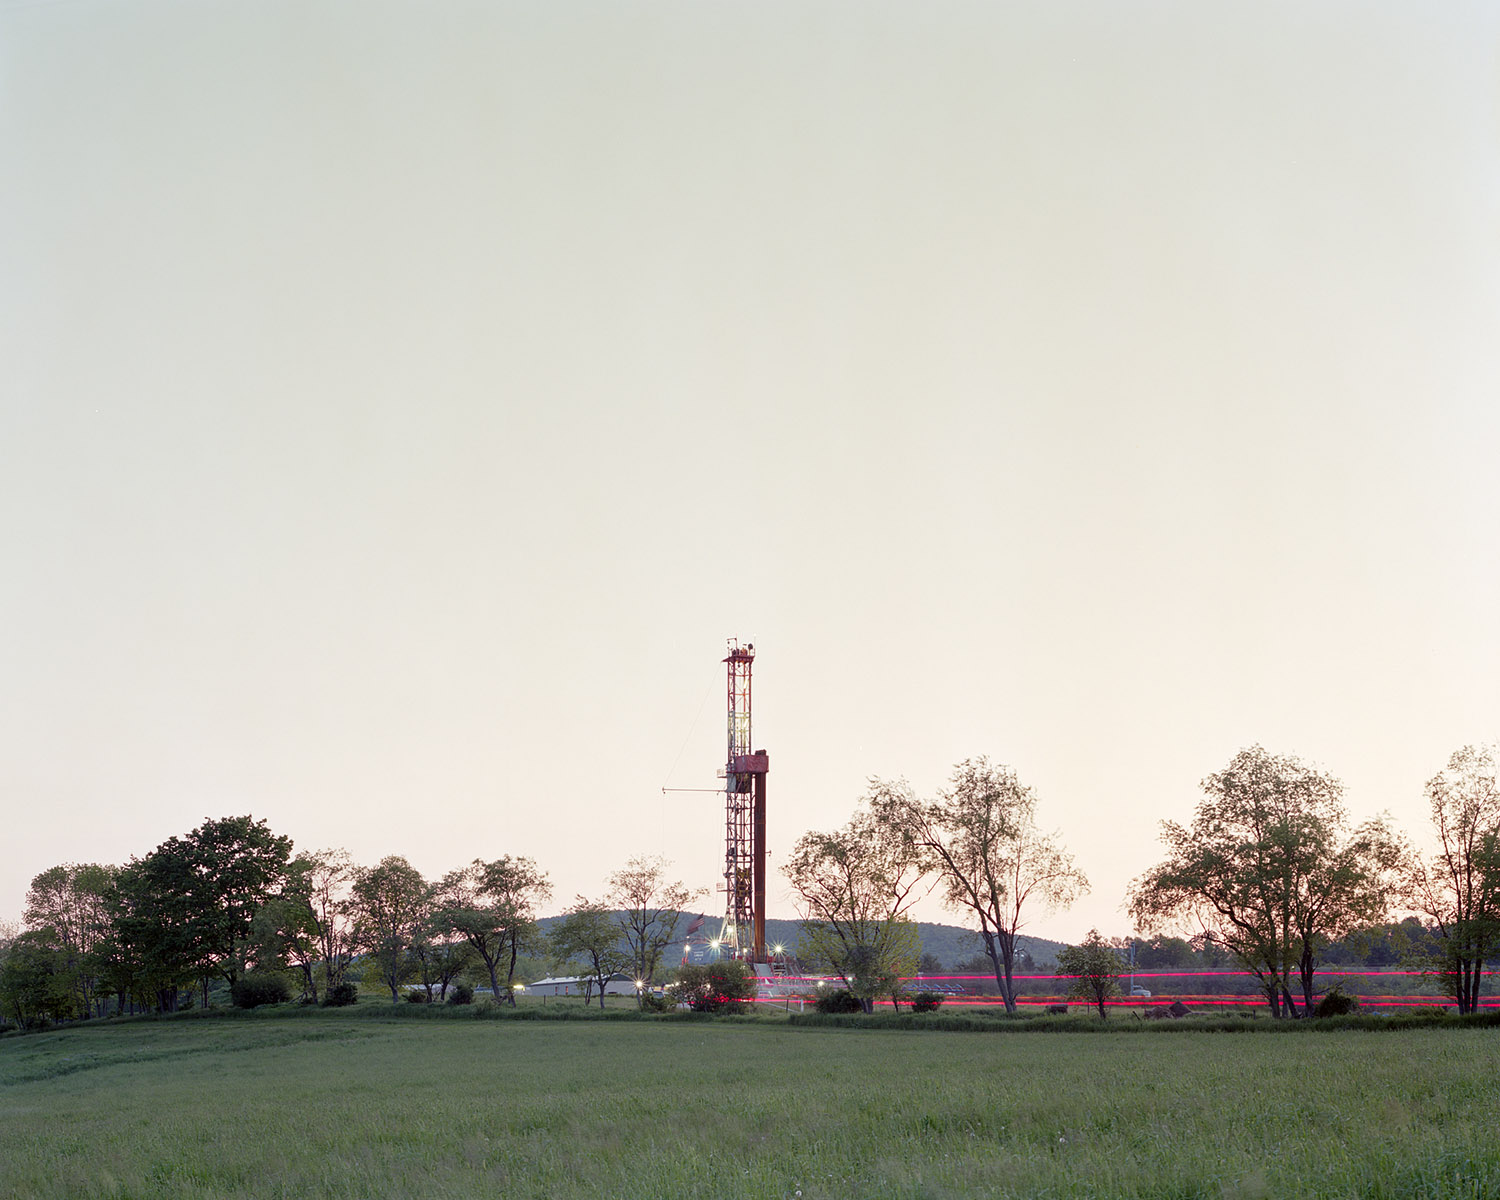 "A Chesapeake Energy gas-drilling rig in Wyalusing, PA.               ©       Normal   0           false   false   false     EN-US   X-NONE   X-NONE                                                                                                                                                                                                                                                                                                                                                                           /* Style Definitions */  table.MsoNormalTable 	{mso-style-name:""Table Normal""; 	mso-tstyle-rowband-size:0; 	mso-tstyle-colband-size:0; 	mso-style-noshow:yes; 	mso-style-priority:99; 	mso-style-parent:""""; 	mso-padding-alt:0in 5.4pt 0in 5.4pt; 	mso-para-margin-top:0in; 	mso-para-margin-right:0in; 	mso-para-margin-bottom:10.0pt; 	mso-para-margin-left:0in; 	line-height:115%; 	mso-pagination:widow-orphan; 	font-size:11.0pt; 	font-family:""Calibri"",""sans-serif""; 	mso-ascii-font-family:Calibri; 	mso-ascii-theme-font:minor-latin; 	mso-hansi-font-family:Calibri; 	mso-hansi-theme-font:minor-latin;}     Noah Addis/MSDP 2012"